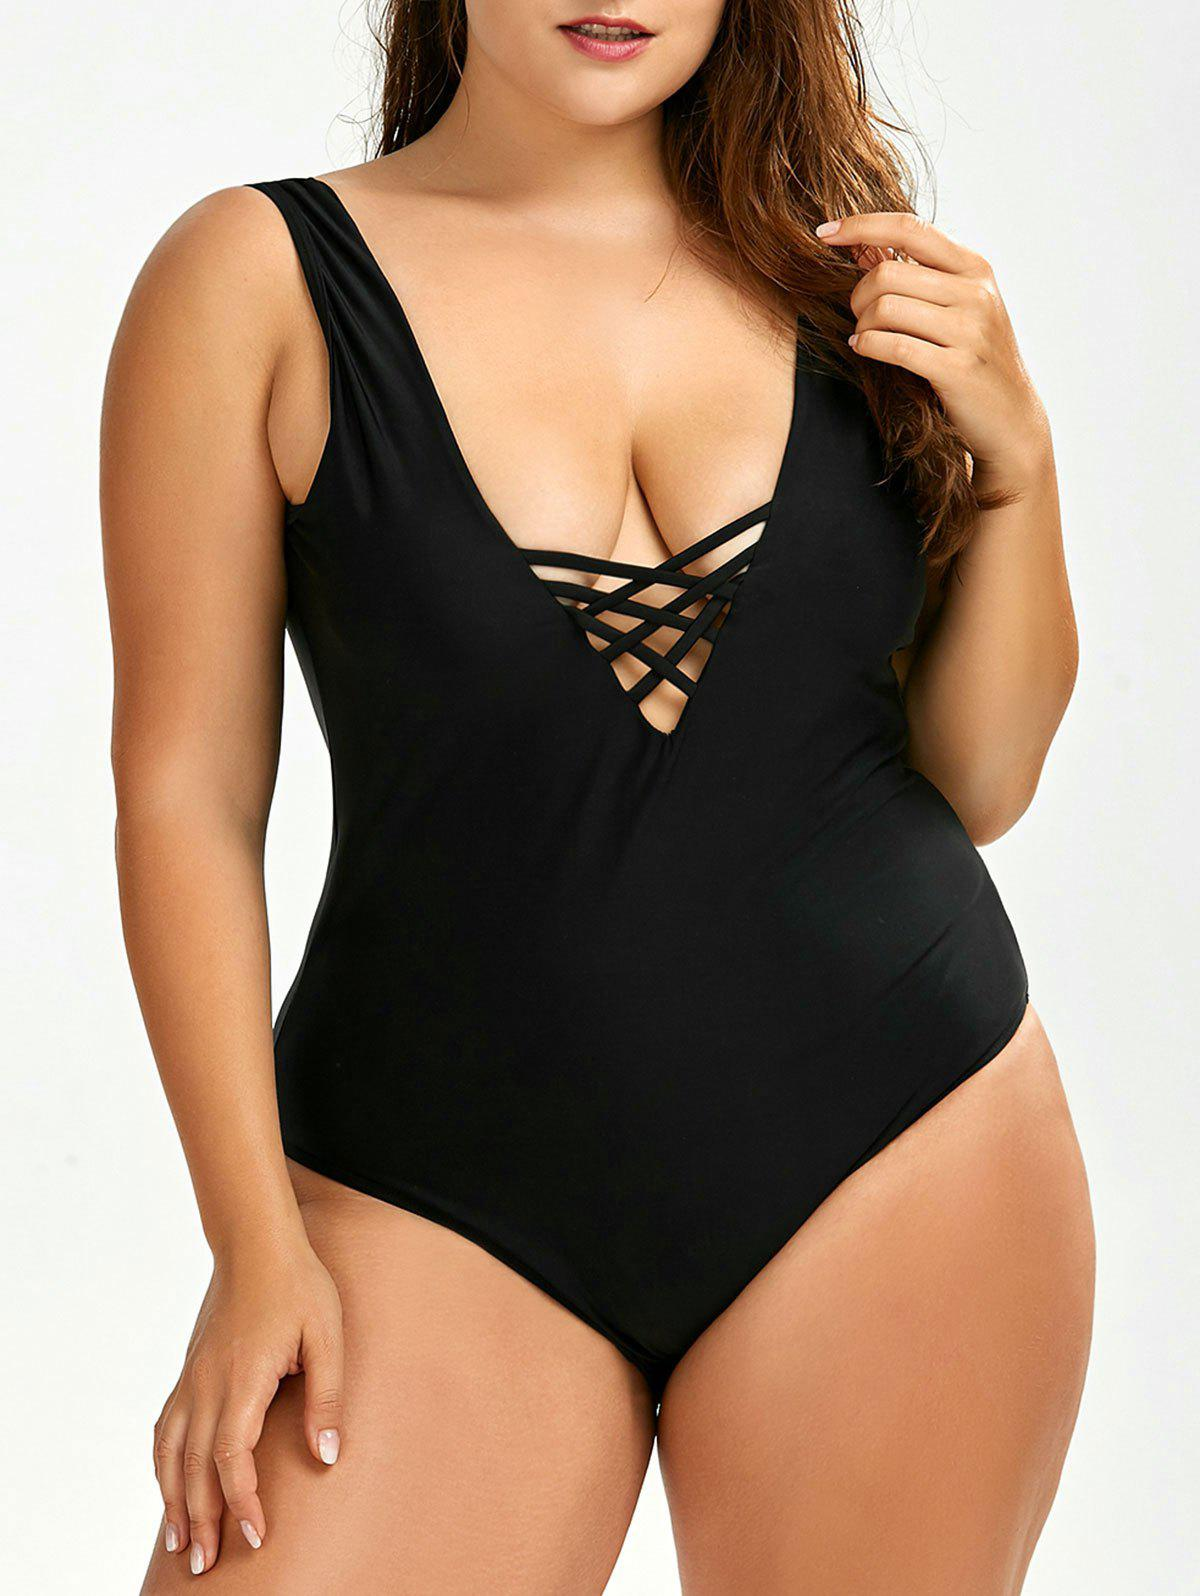 Plus Size Backless SwimwearWOMEN<br><br>Size: 2XL; Color: BLACK; Gender: For Women; Swimwear Type: One Piece; Material: Polyester; Bra Style: Padded; Support Type: Wire Free; Pattern Type: Polka Dot; Waist: Natural; Elasticity: Micro-elastic; Weight: 0.2000kg; Package Contents: 1 x Swimwear;